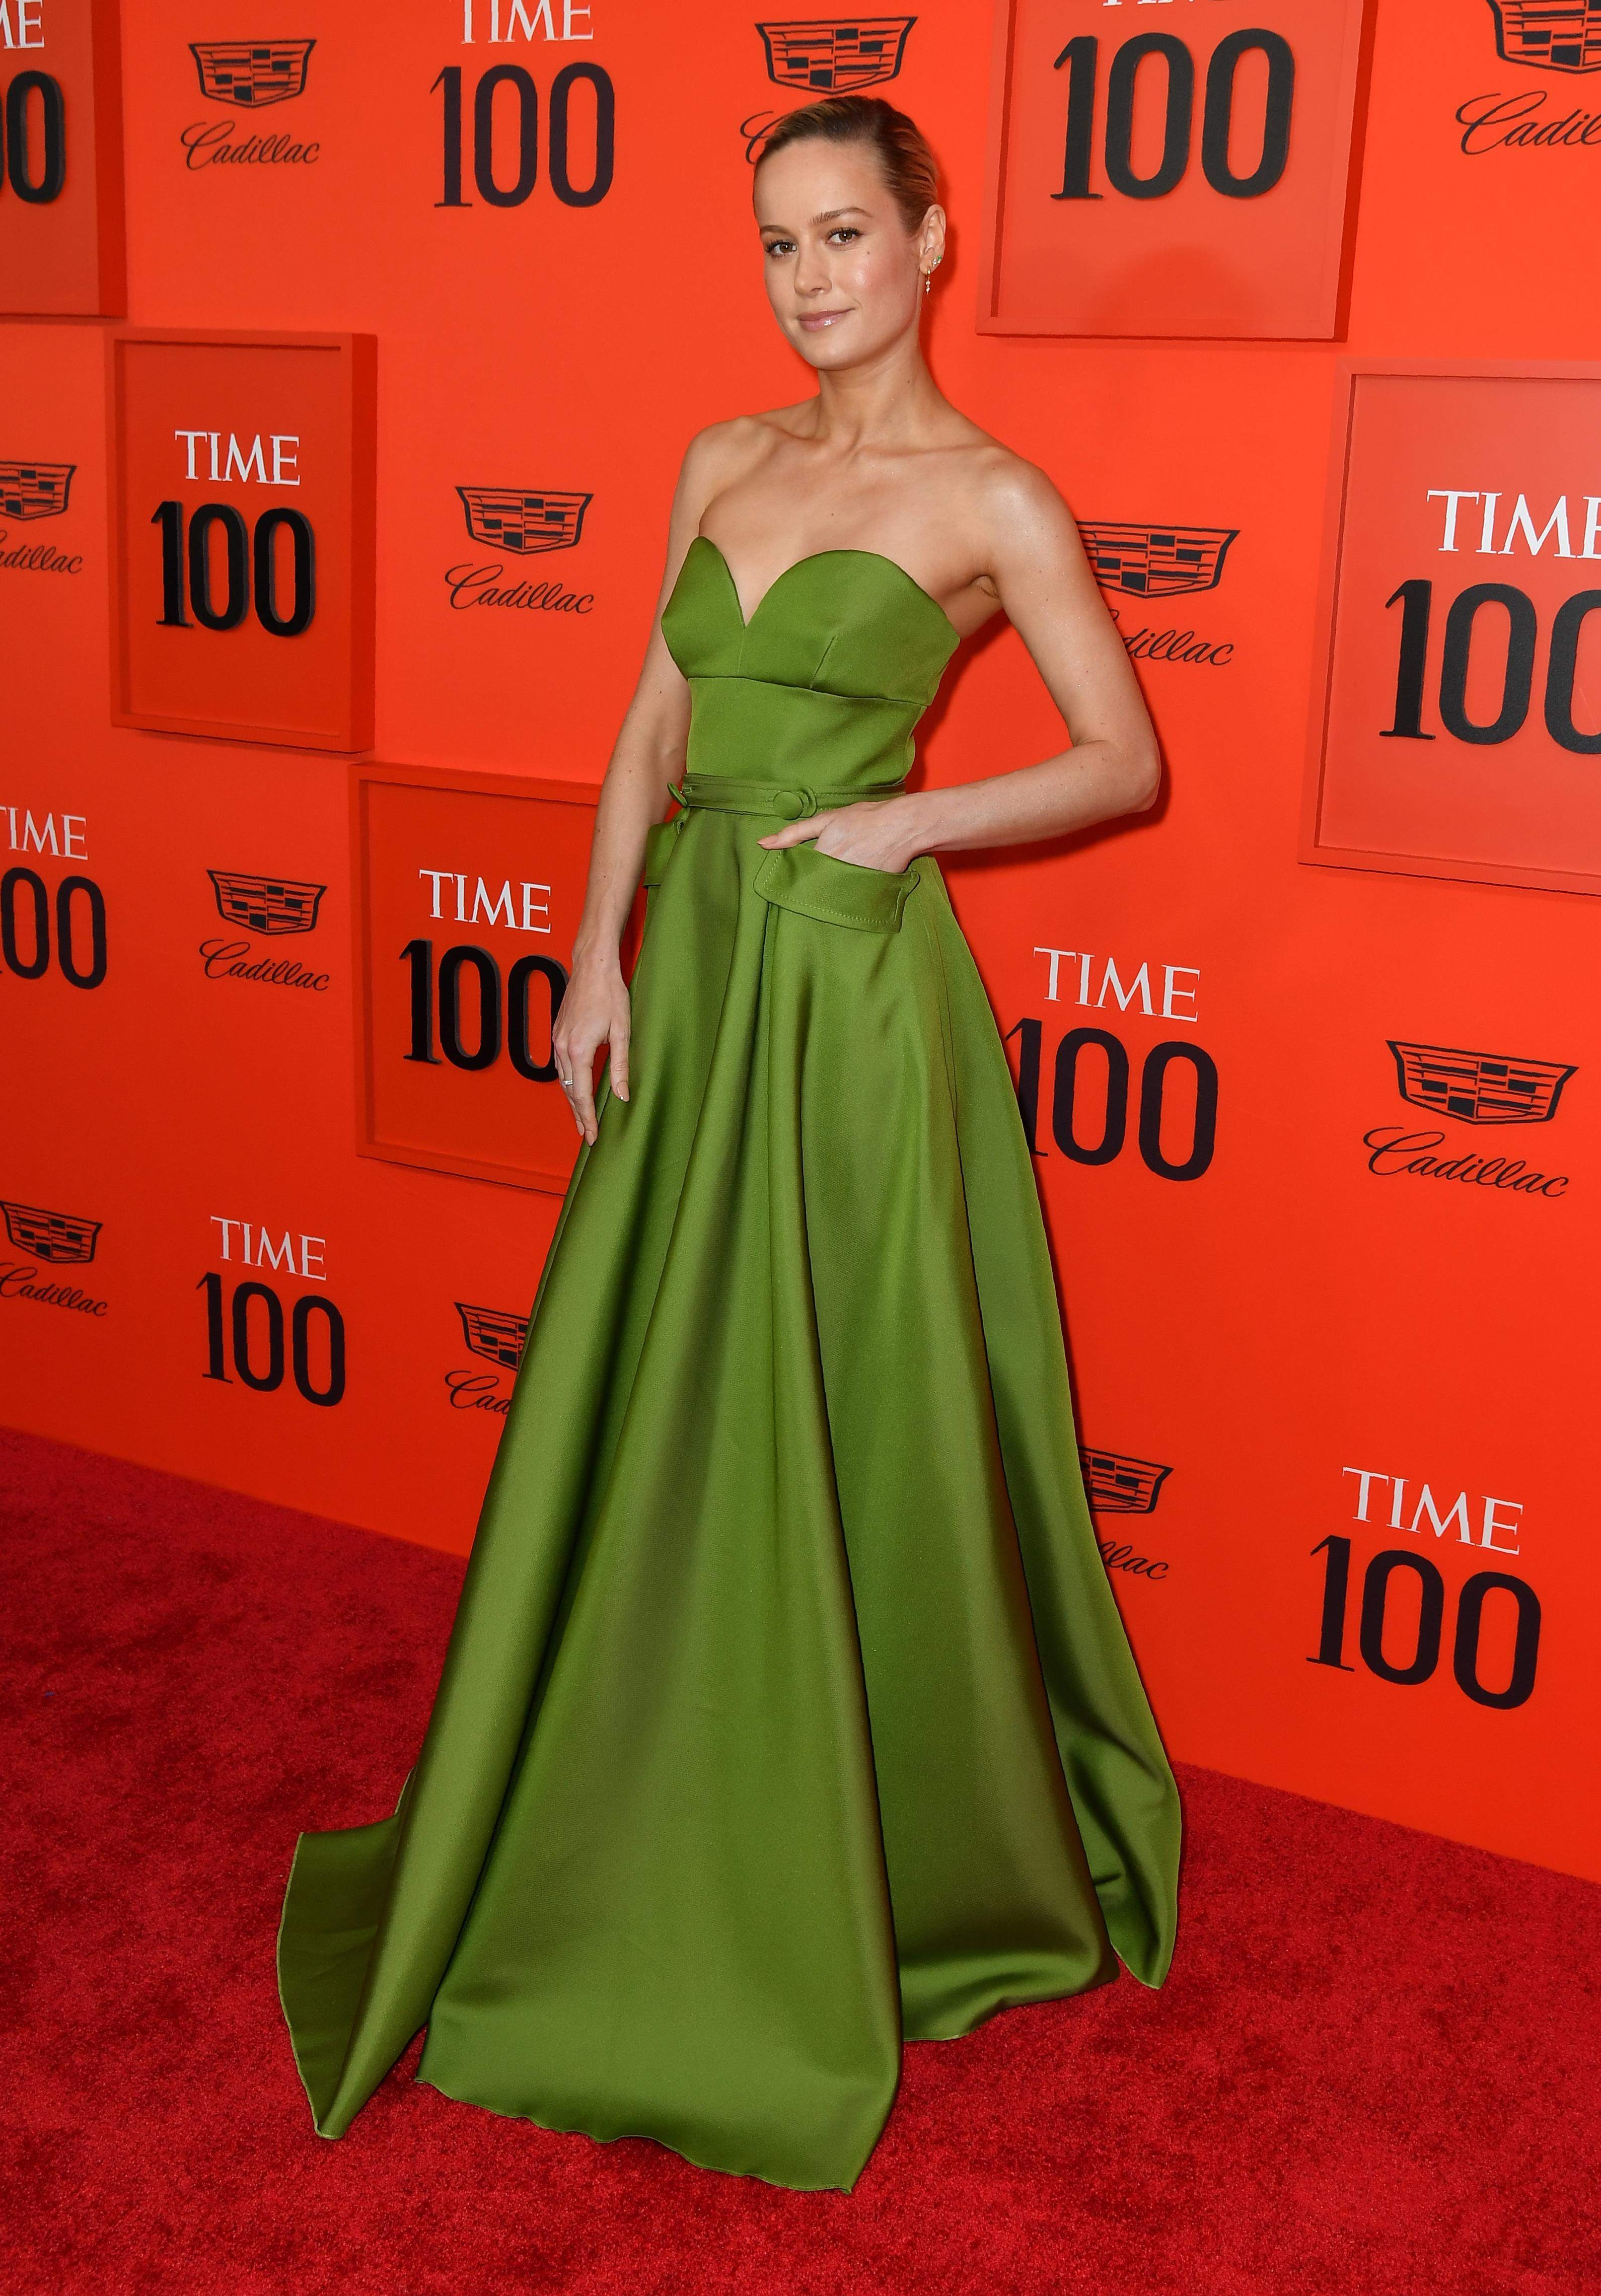 US actress Brie Larson arrives on the red carpet for the Time 100 Gala at the Lincoln Center in New York on April 23, 2019